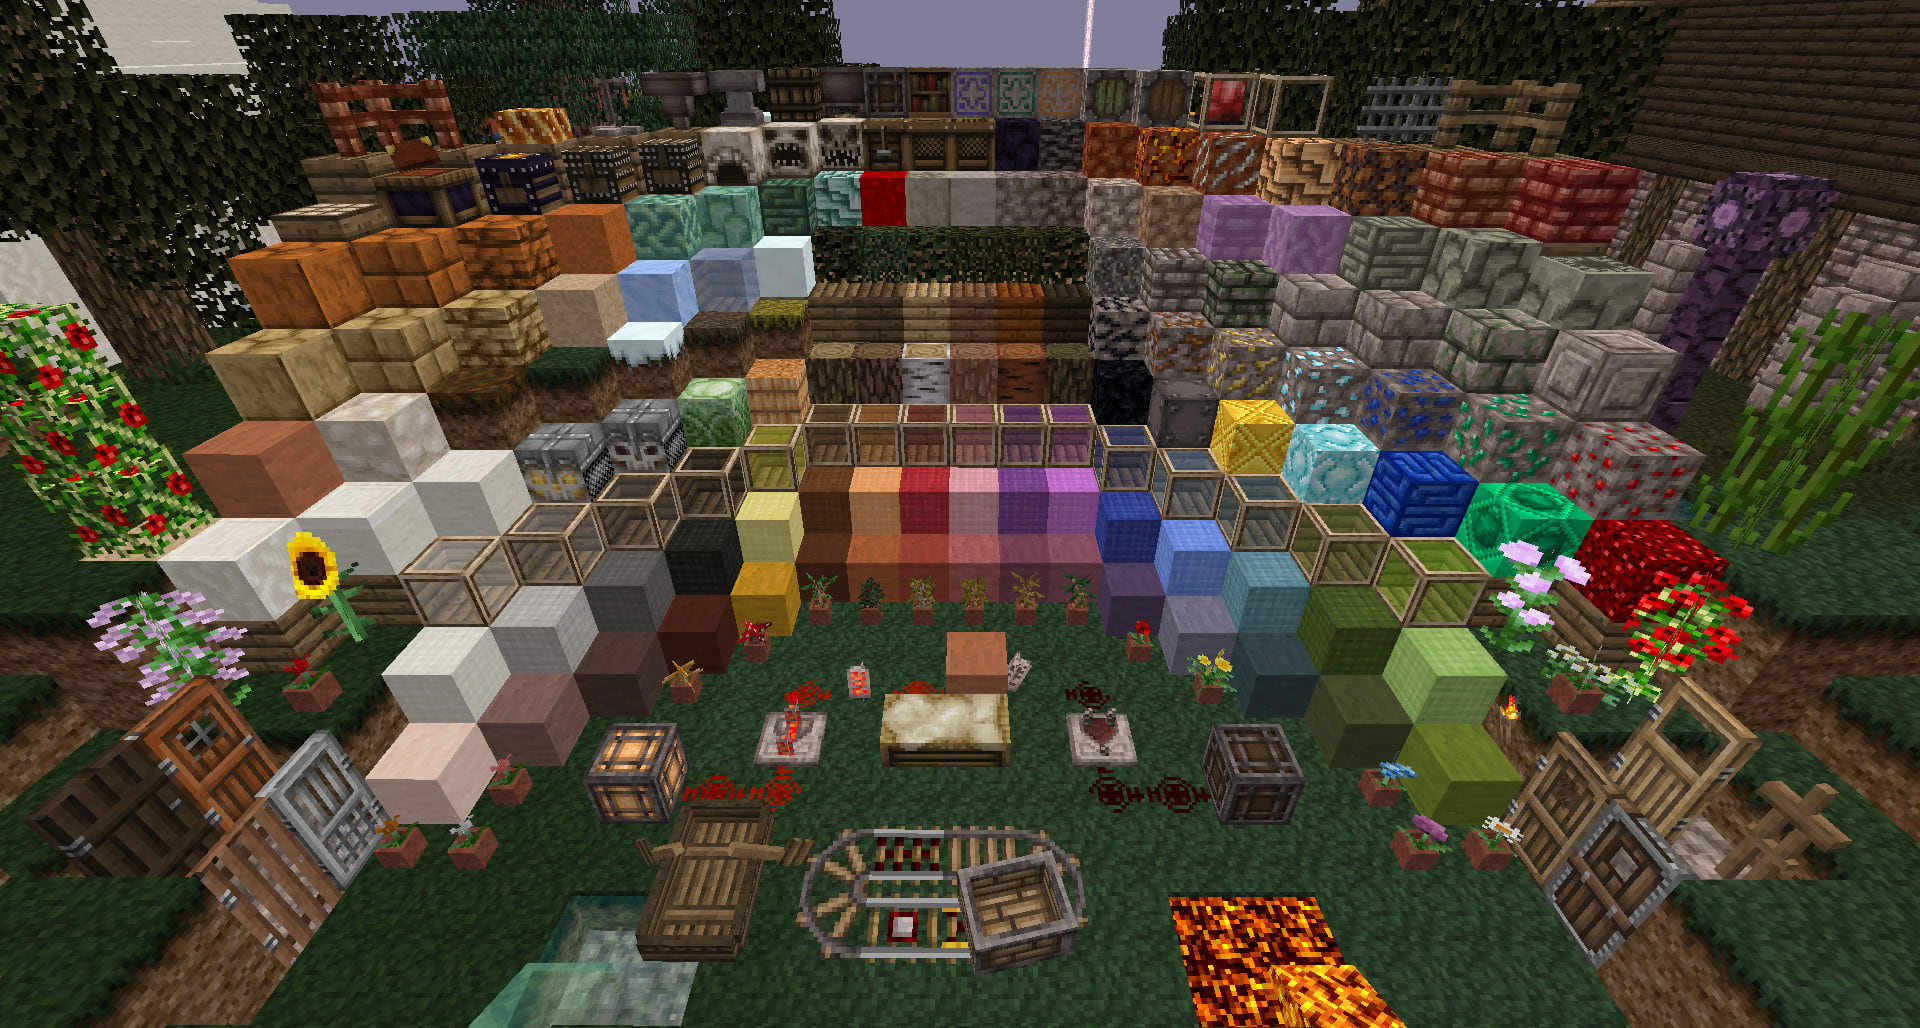 Create You A Minecraft Texture Pack By Tr0pic